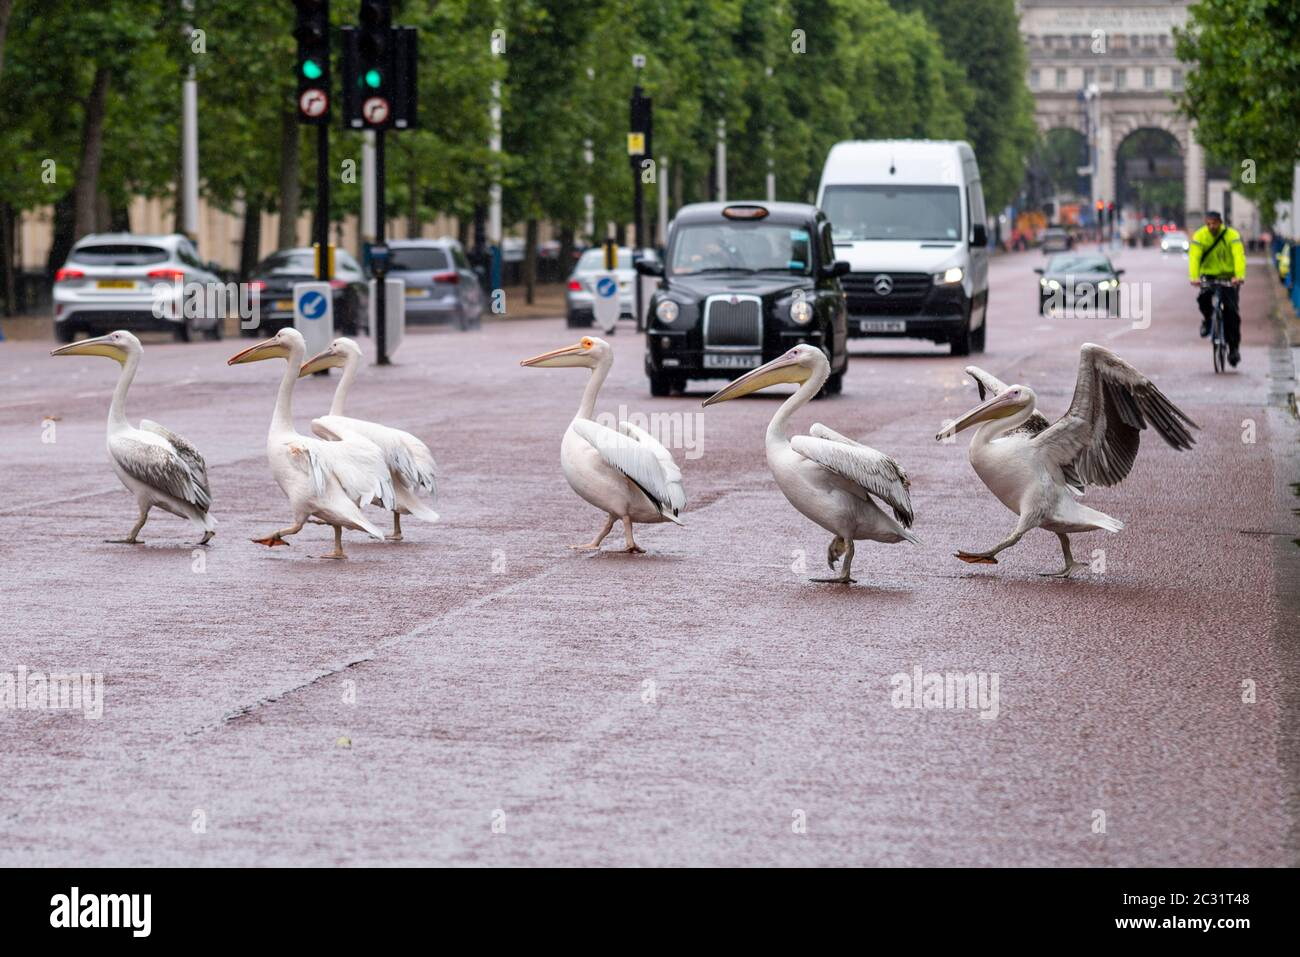 pelicans-crossing-the-mall-road-in-london-from-st-jamess-park-stopping-traffic-pelican-crossing-with-attitude-large-birds-walking-in-road-2C31T48.jpg